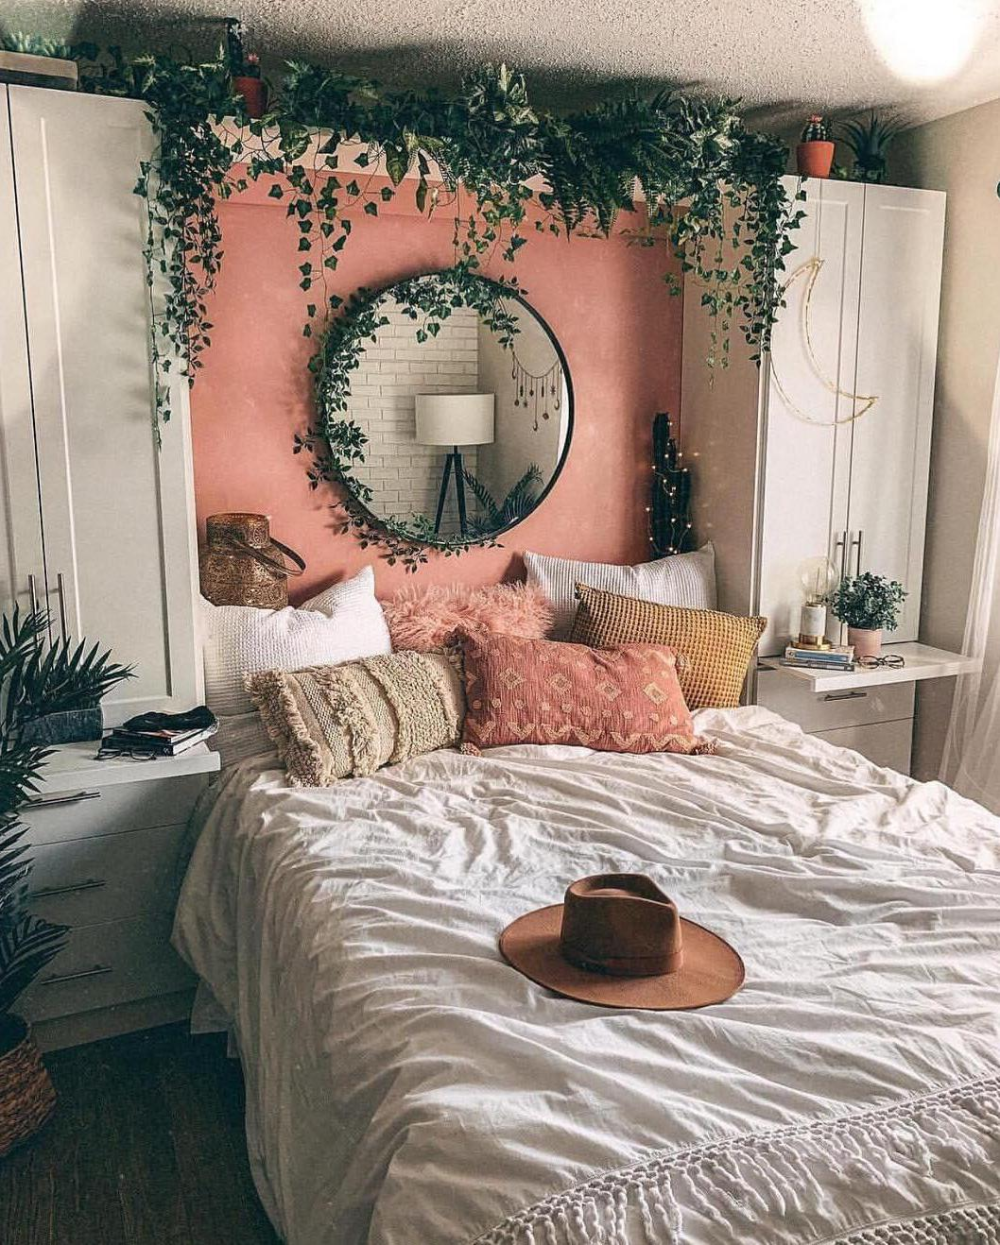 52 warm and romantic bedroom bed decoration ideas with